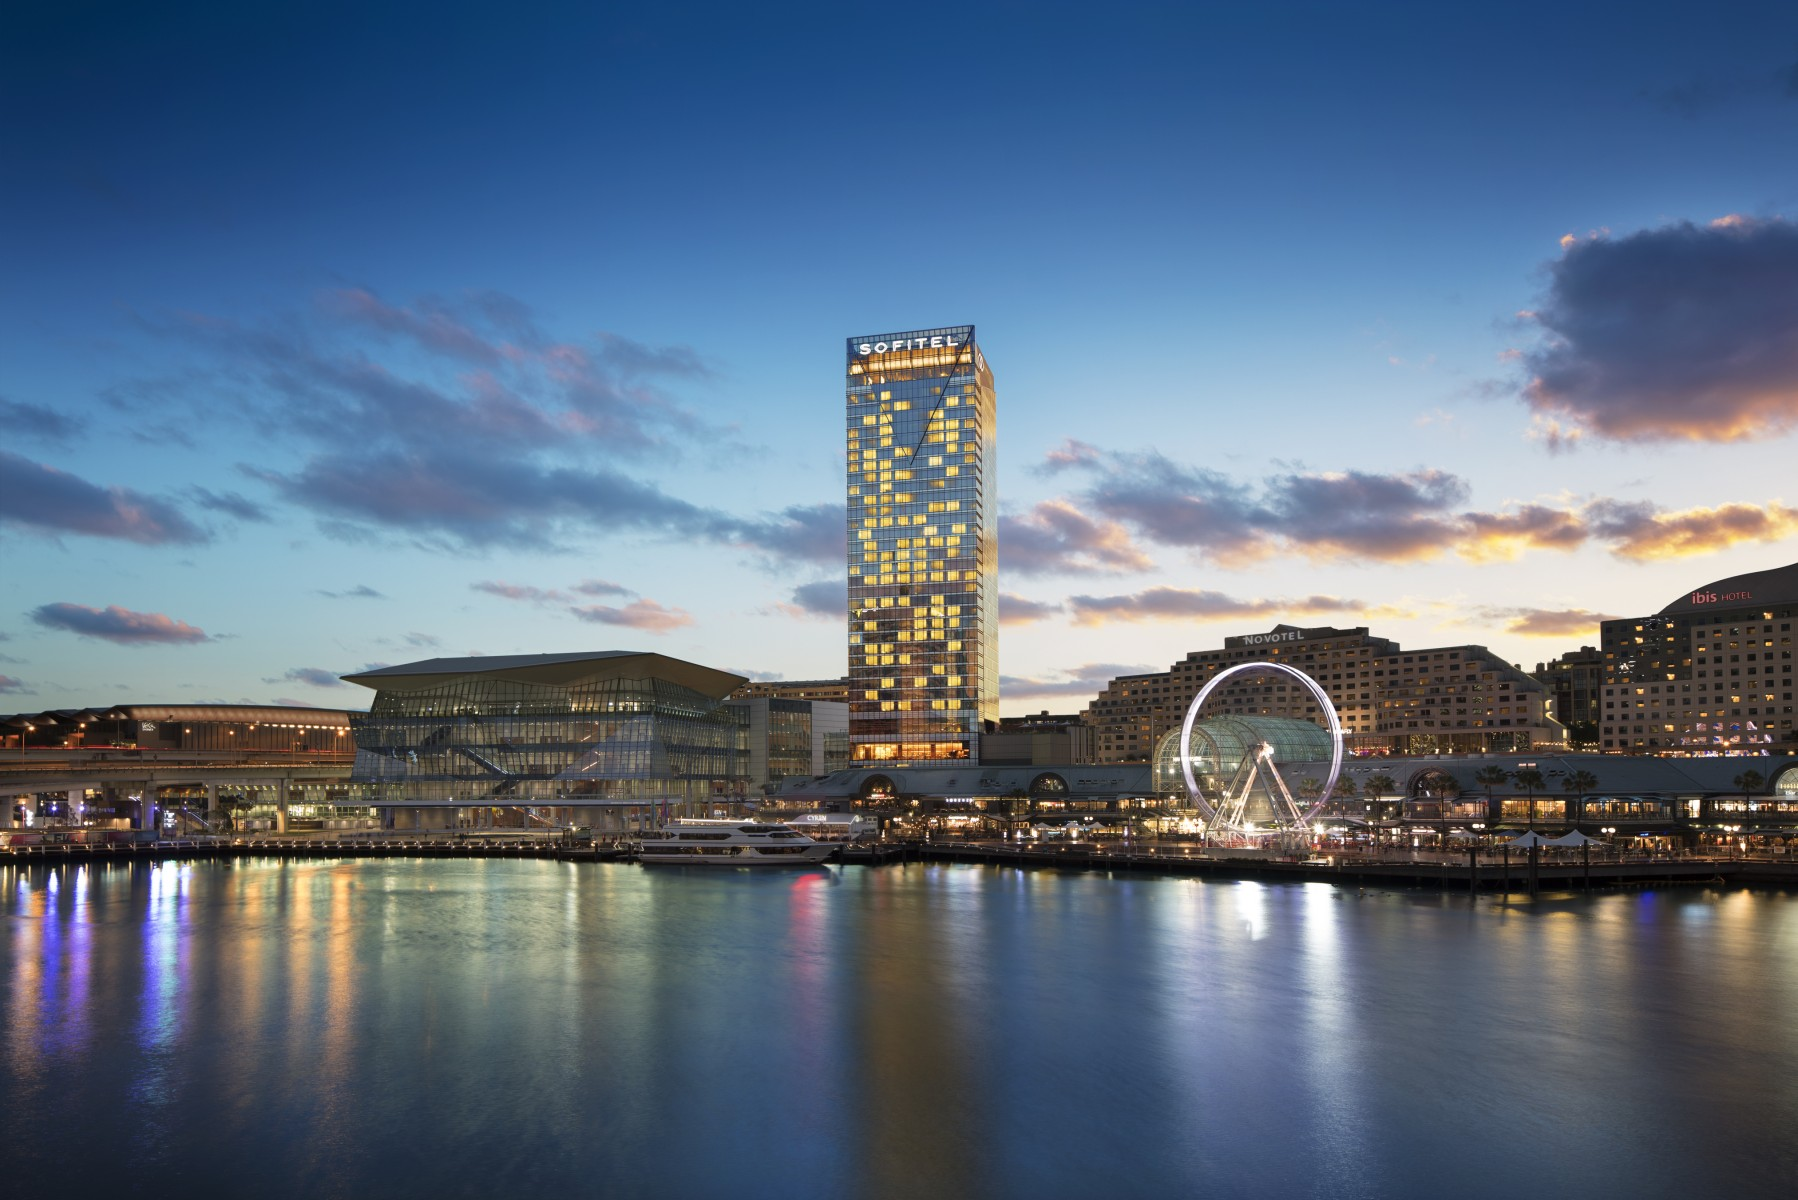 Sofitel sydney darling harbour luxury hotel official site for Sites hotel